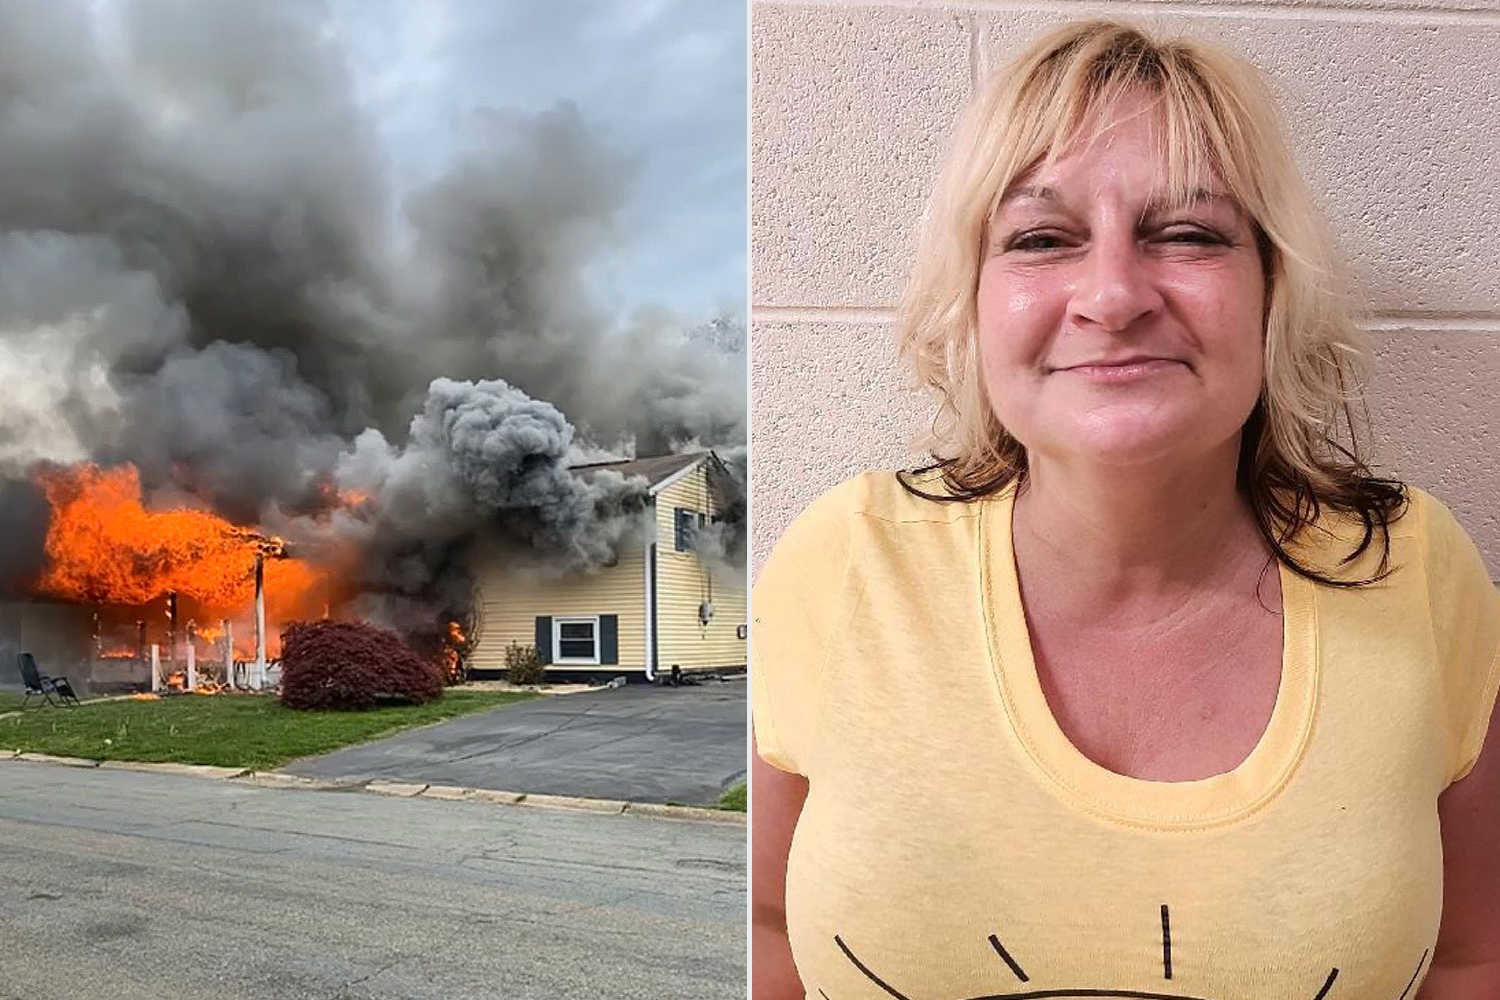 A woman sat in a lawn chair after setting her home on fire and watched the house become engulfed in flames